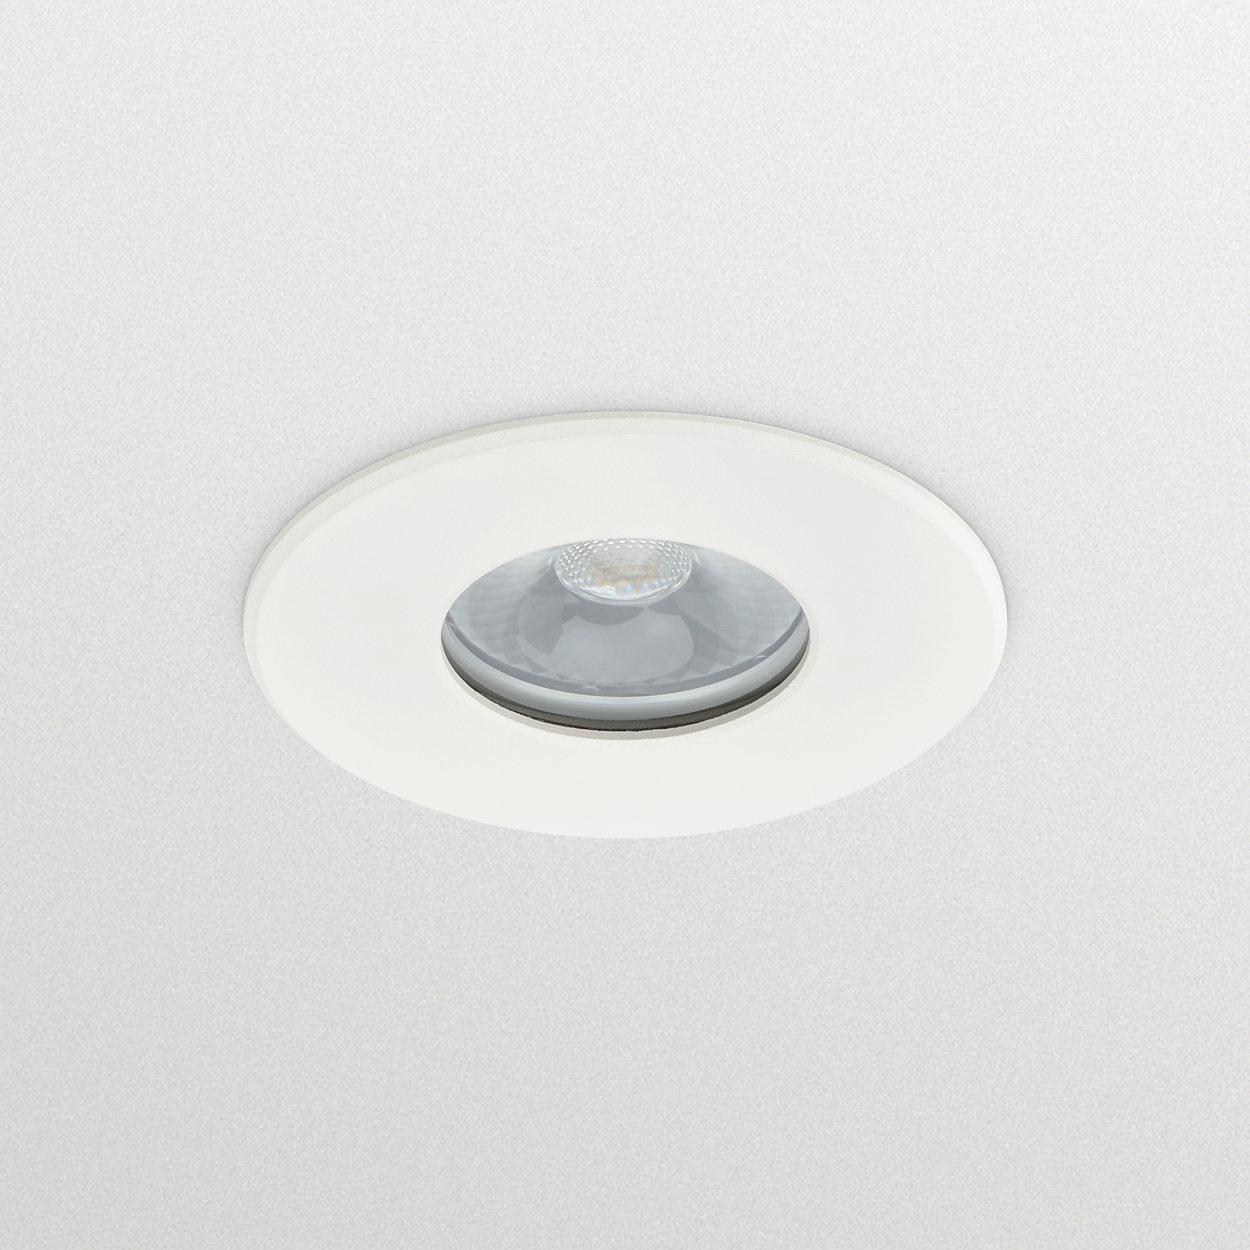 CoreLine Recessed Spot – for every project, where light really matters